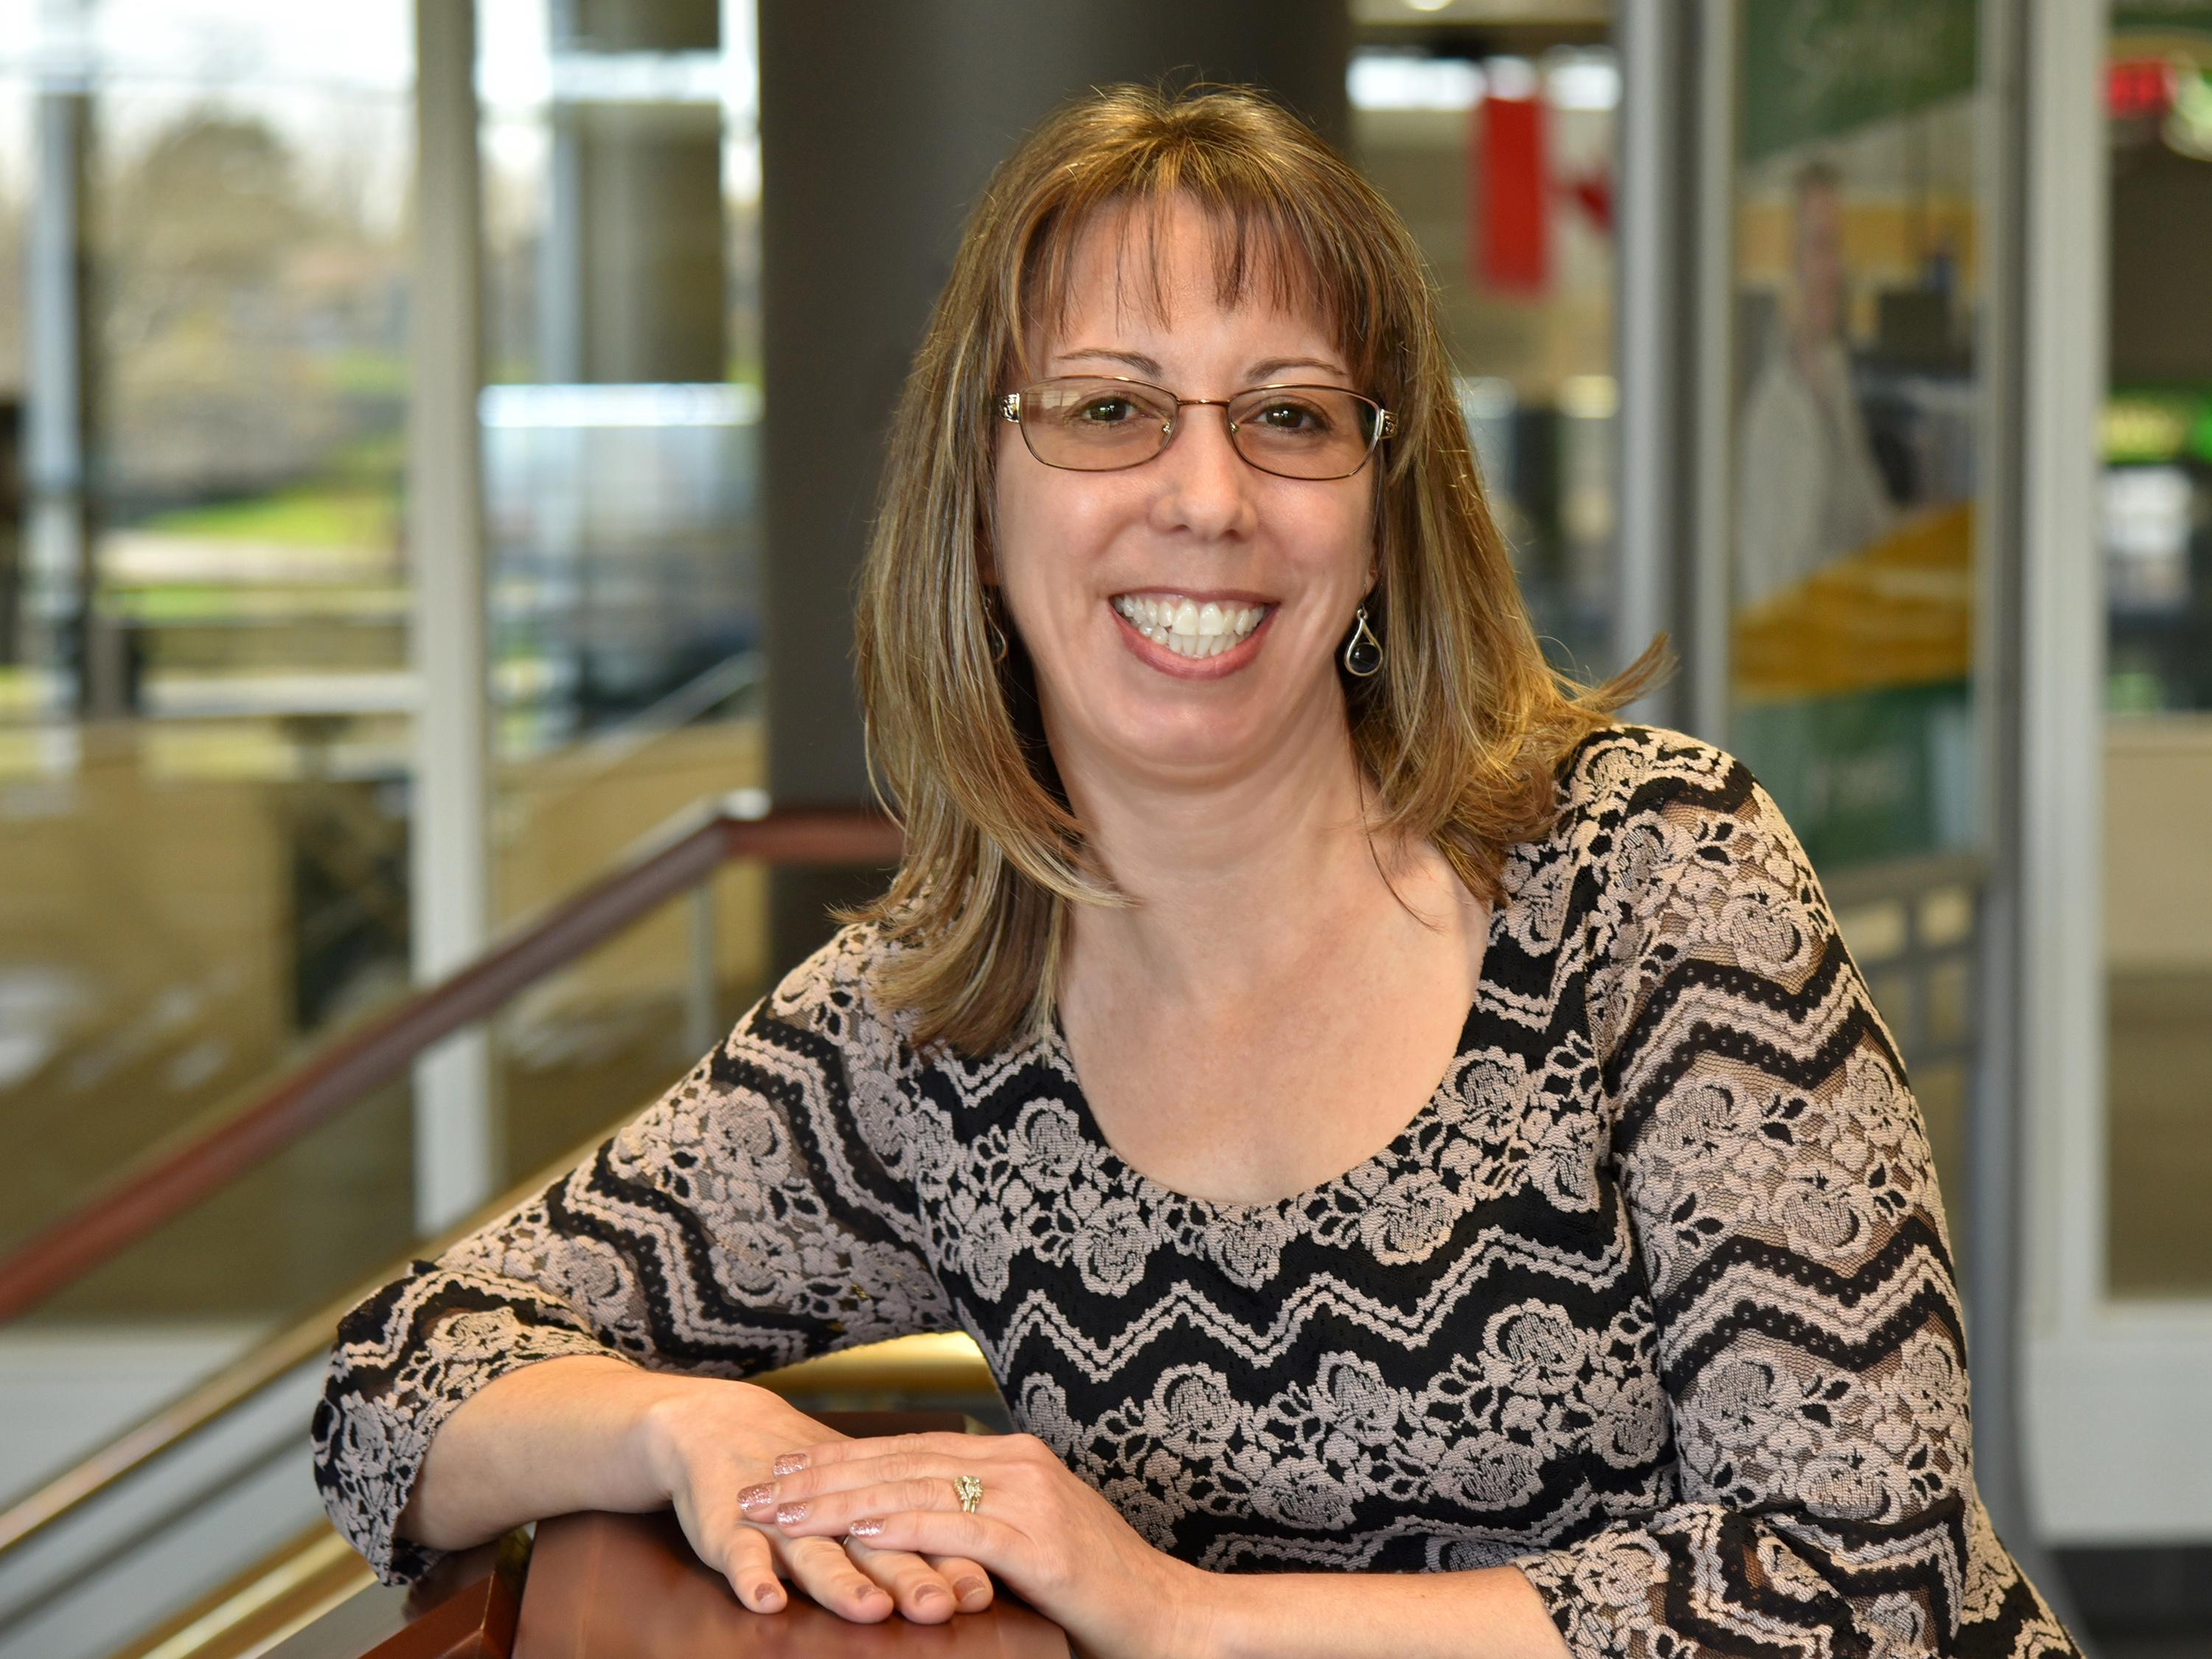 Holli Stone, winner of a SUNY Chancellor's Award for Excellence in Professional Service